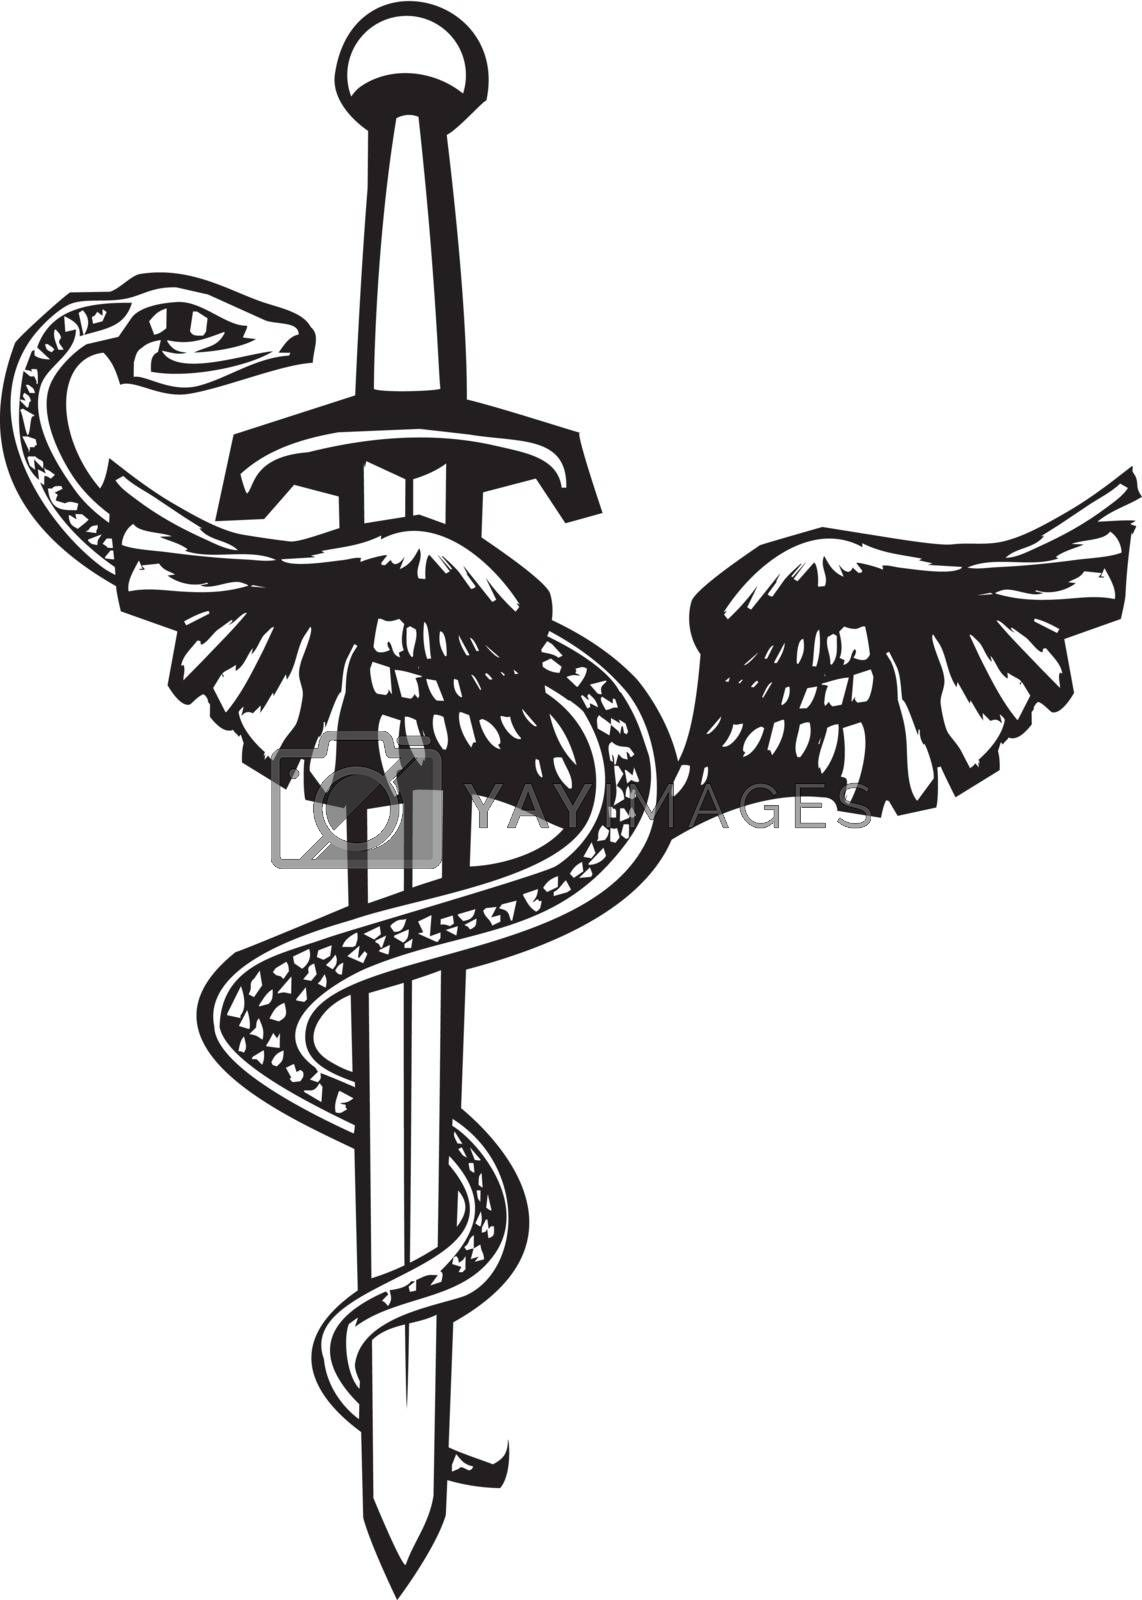 Woodcut image of the Mayan plumed serpent god Kukulcan entwined around a sword.